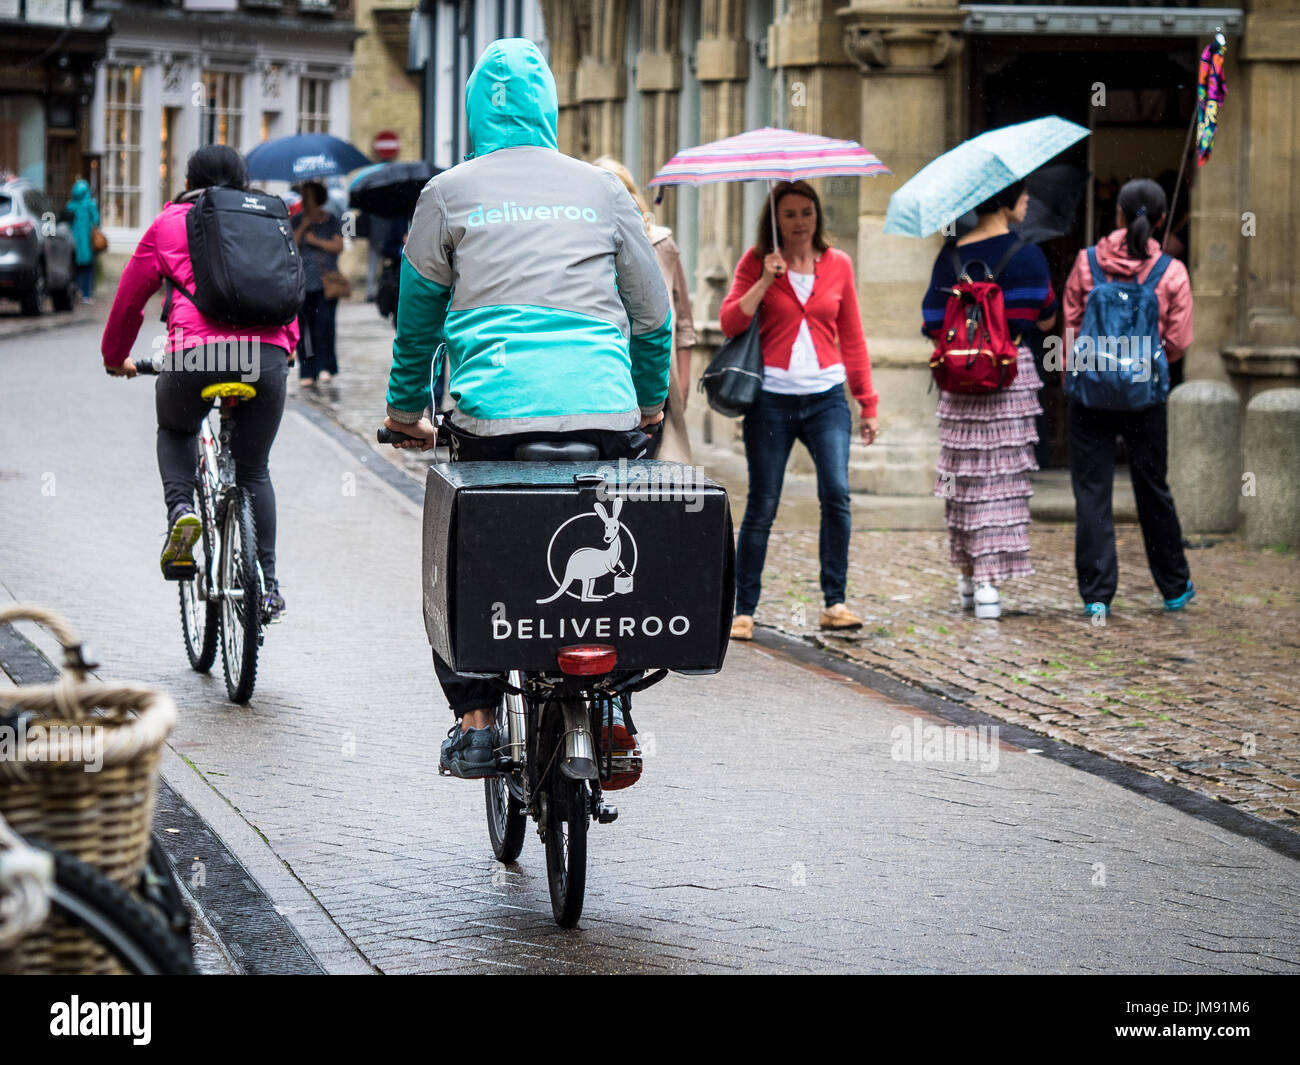 eb6378f527a Deliveroo courier - a Deliveroo food delivery courier rides in the rain in  central Cambridge UK